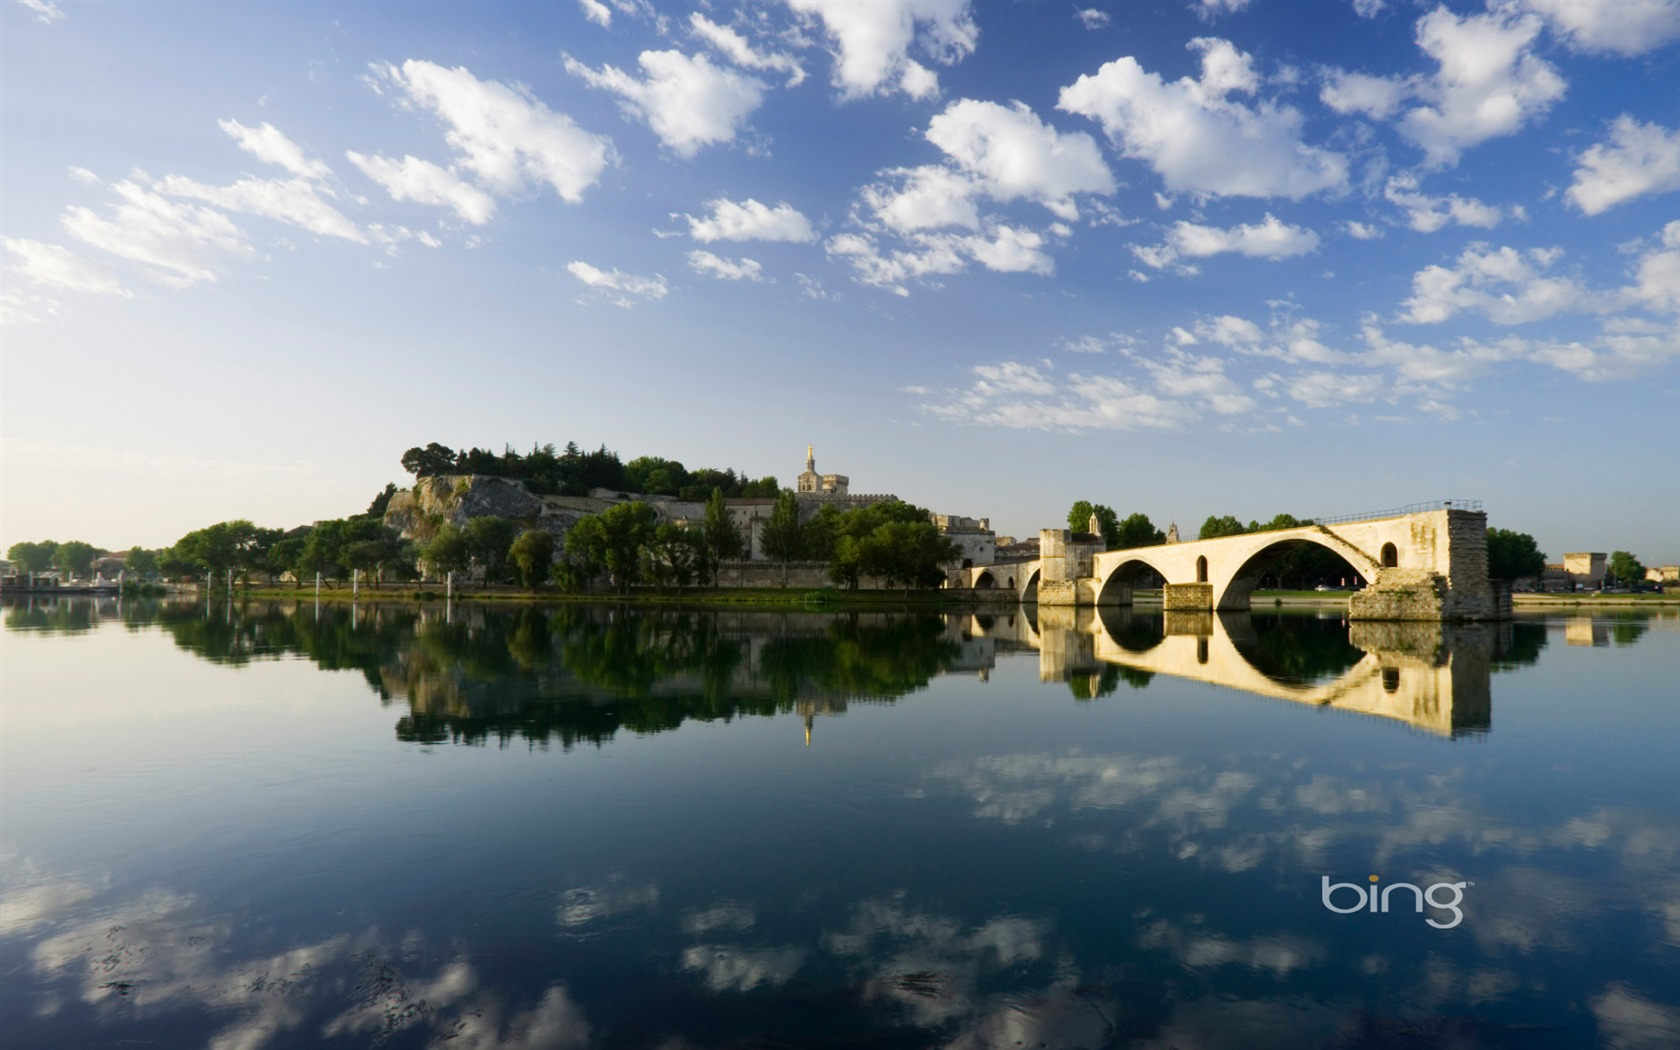 ... on the Rhone France-Bing Wallpaper - 1680x1050 wallpaper download